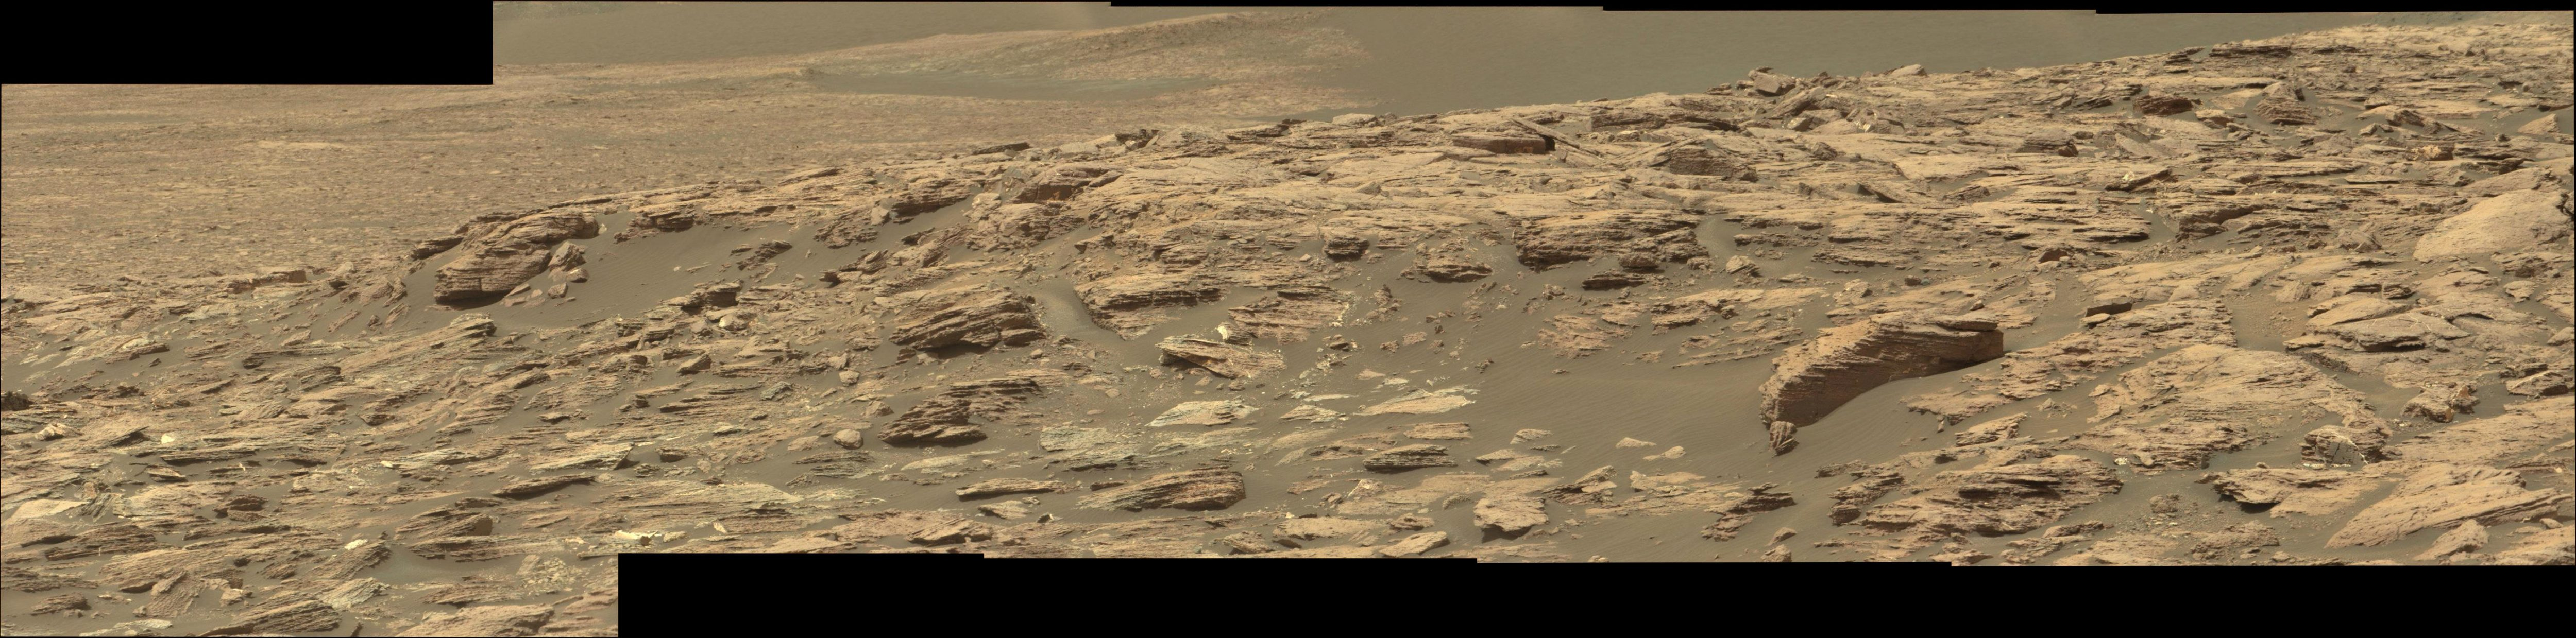 panoramic-curiosity-rover-view-1-sol-1493-was-life-on-mars